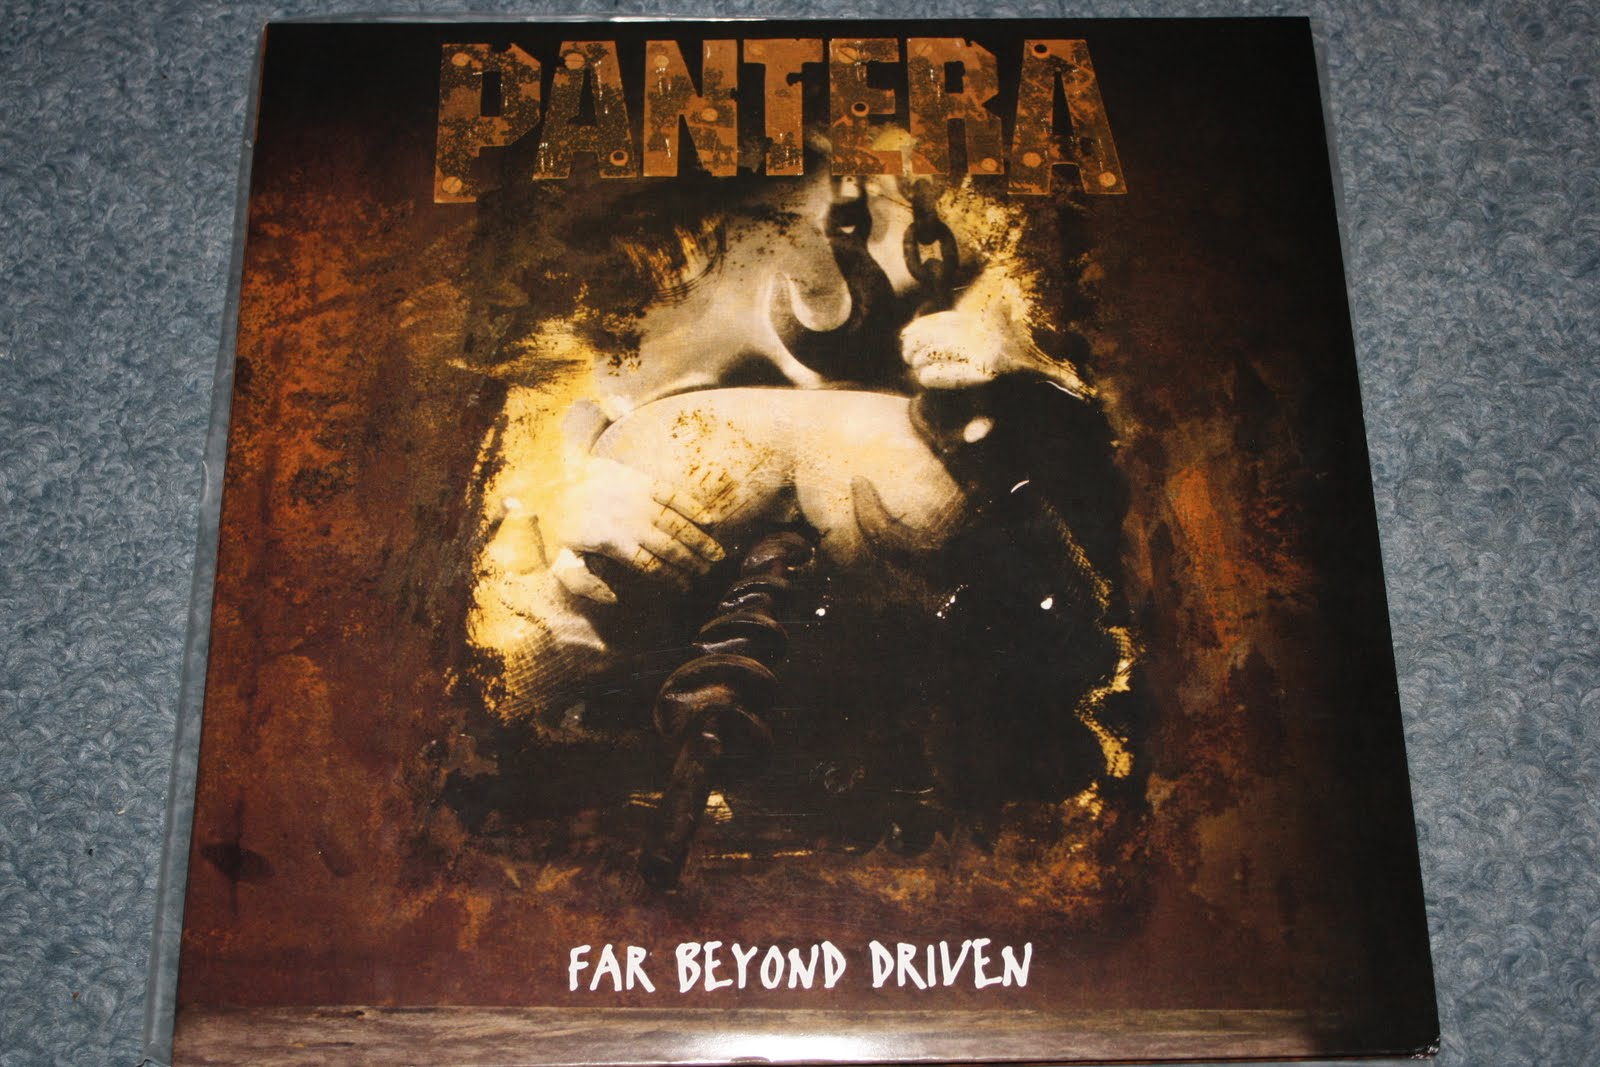 pantera far beyond driven cover - photo #3